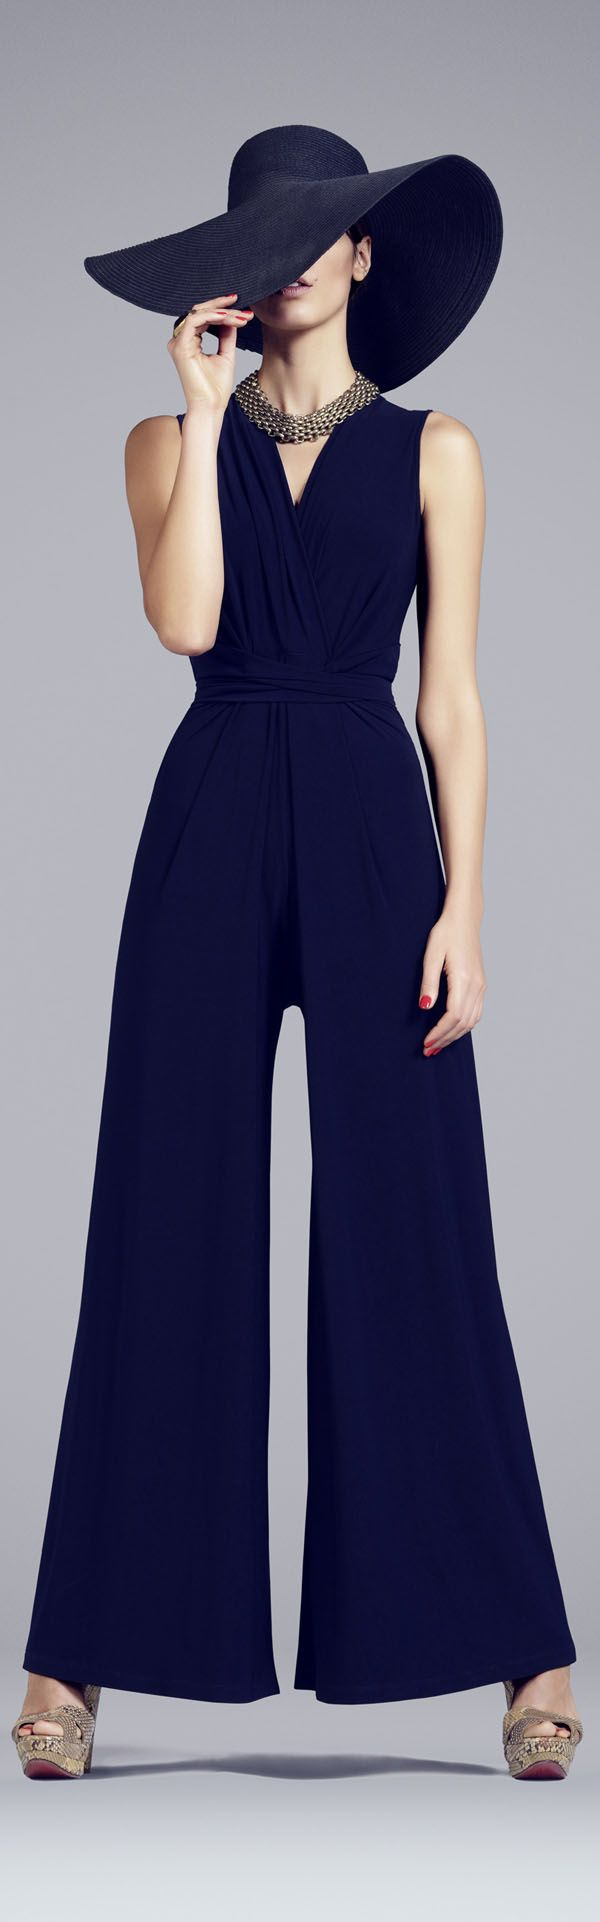 Inspired high-street fashion: Phase Eight - Women's jumpsuit with culotte-style trousers, loose and comfortable. Sporting a navy blue in-keeping with elements of the French Riviera